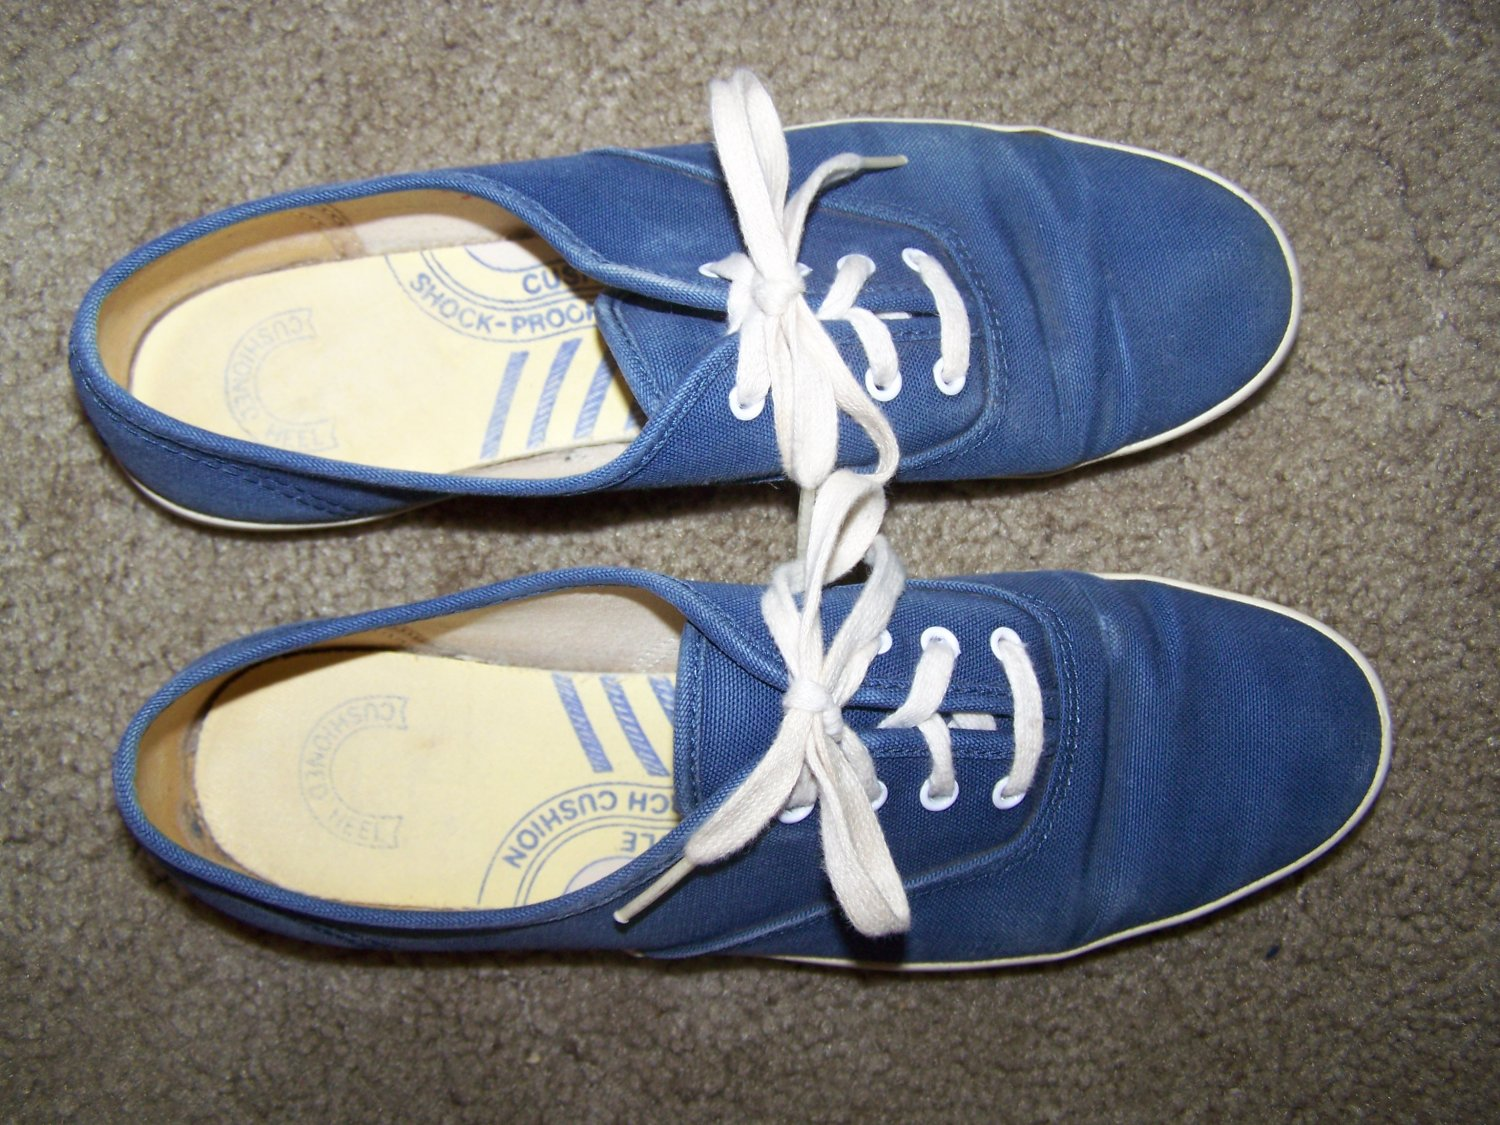 Womens Vintage Keds Blue Canvas Tennis Shoes Sneakers 8 1/2